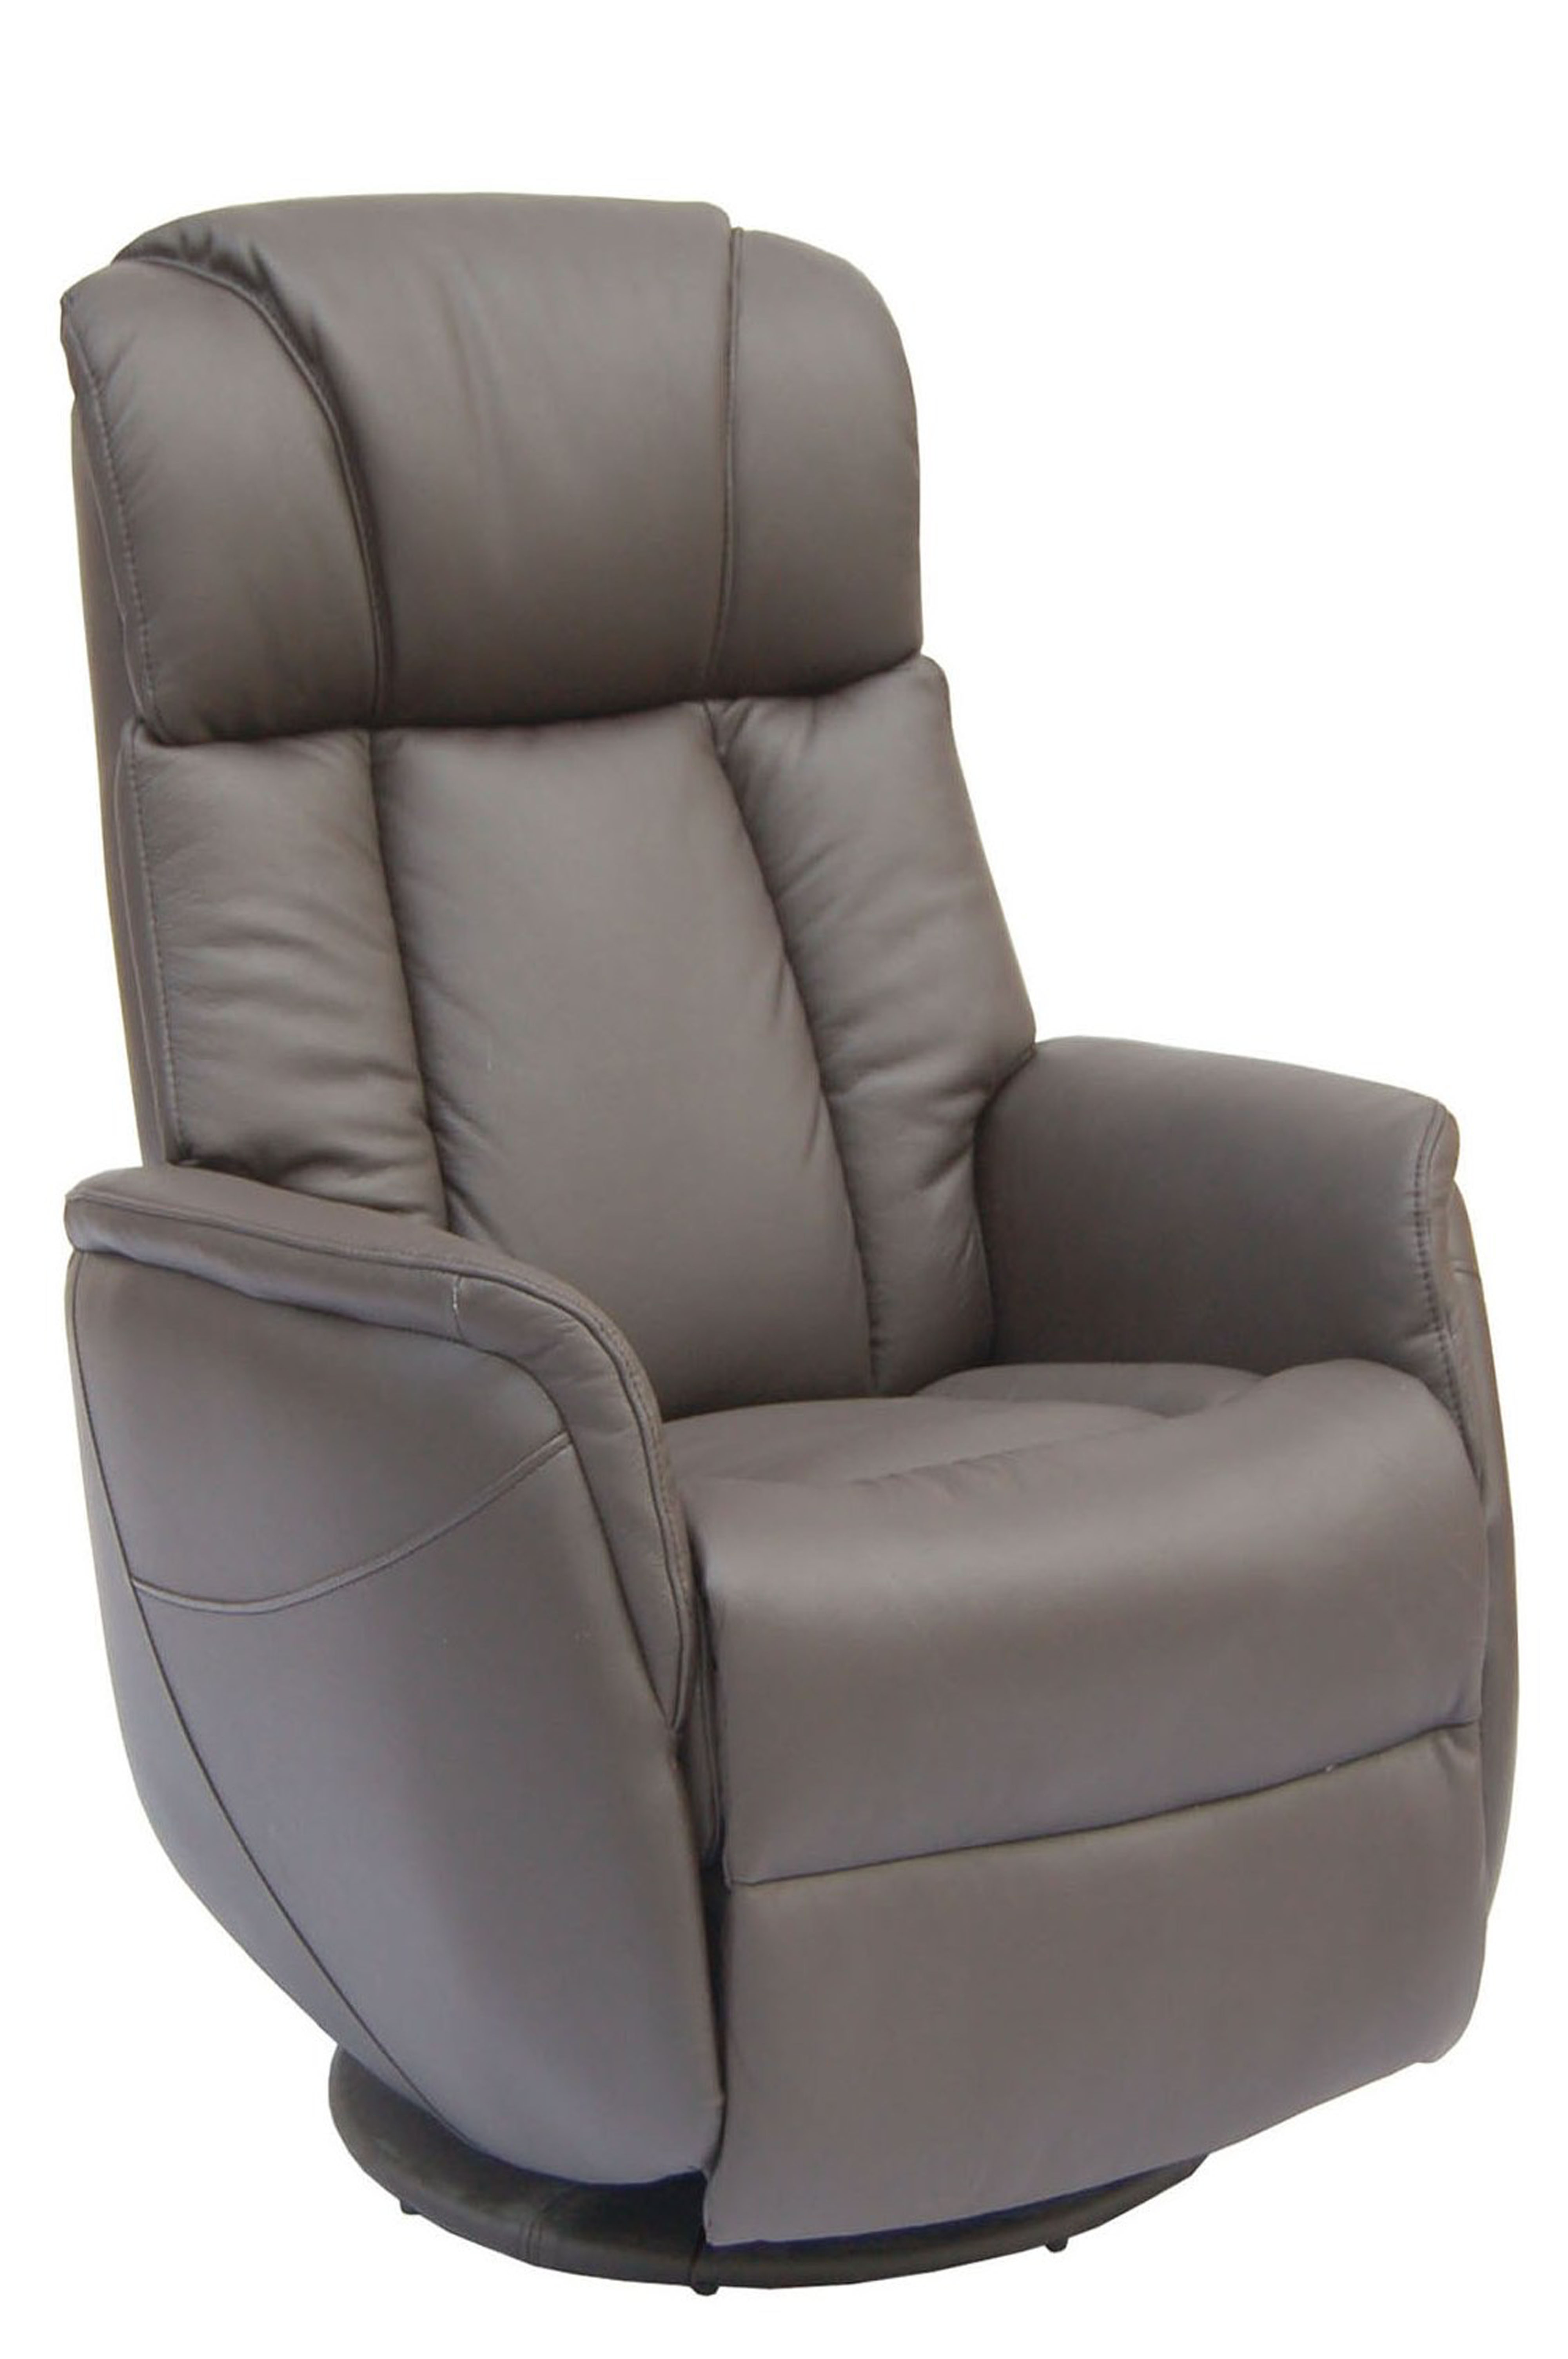 Gfa Sorrento Electric Rock & Swivel Leather Recliner Chair - Espresso for Espresso Leather Swivel Chairs